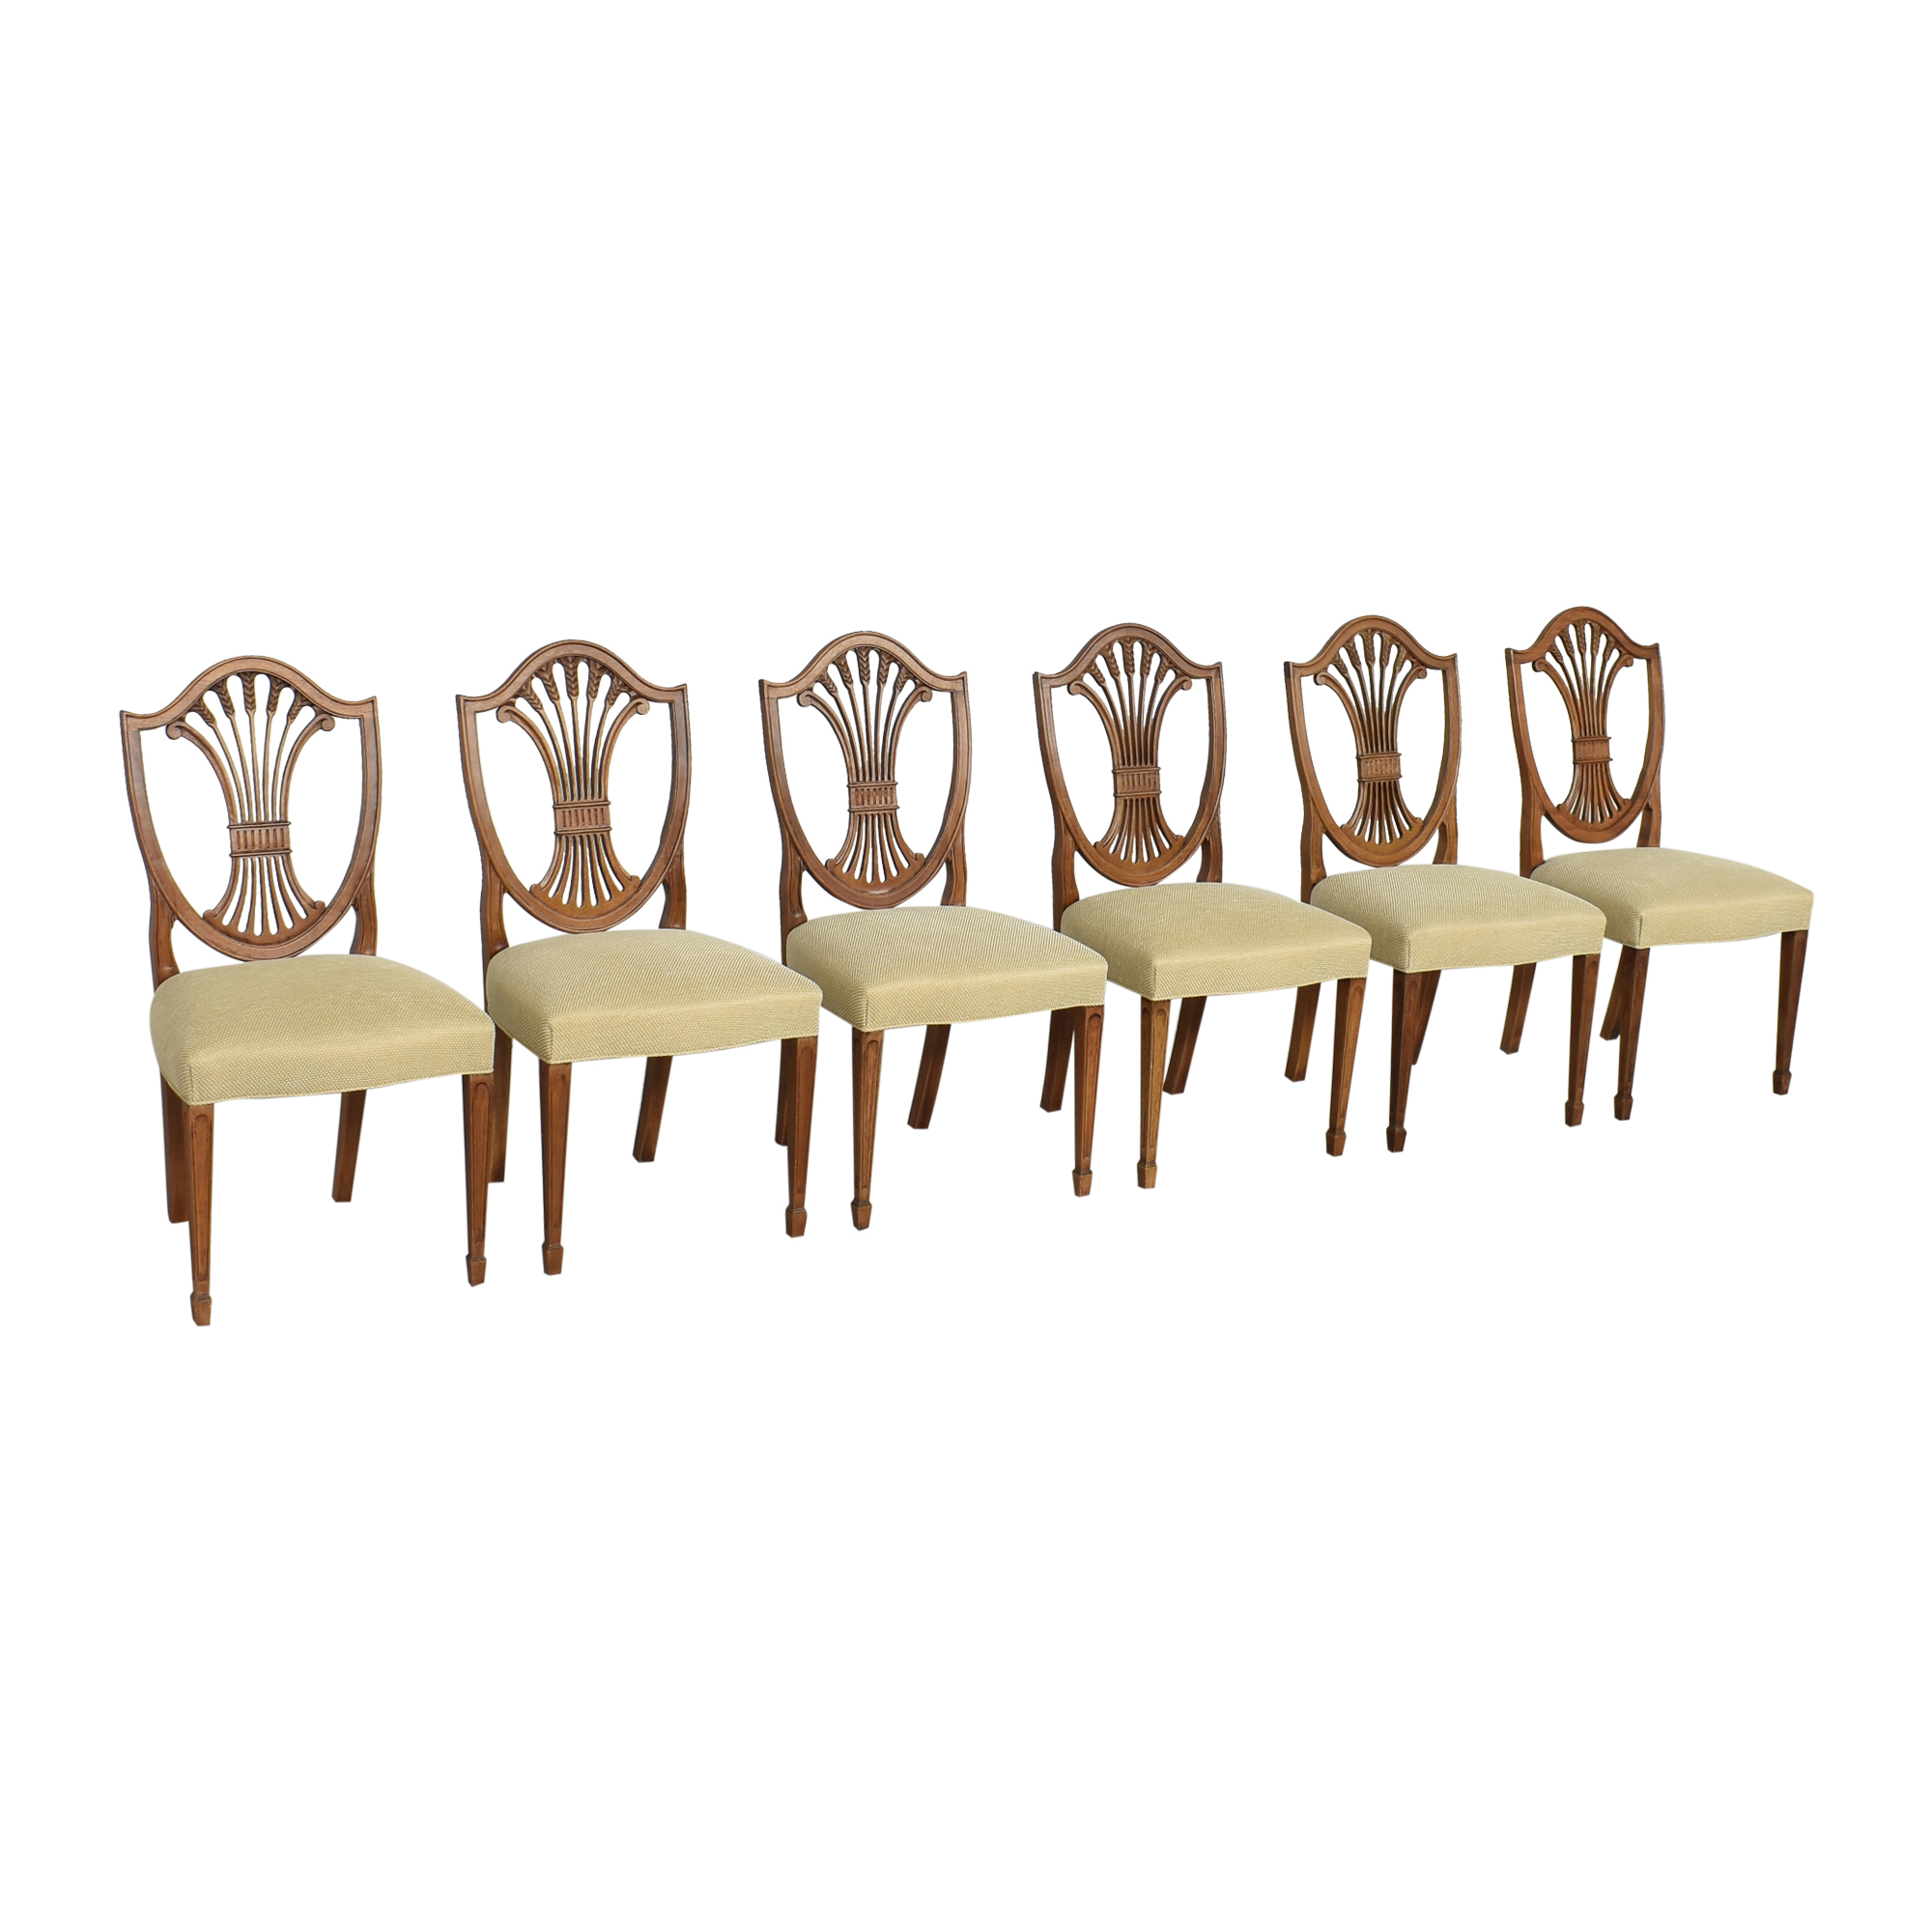 Stickley Furniture Stickley Furniture Monroe Place Dining Side Chairs ct